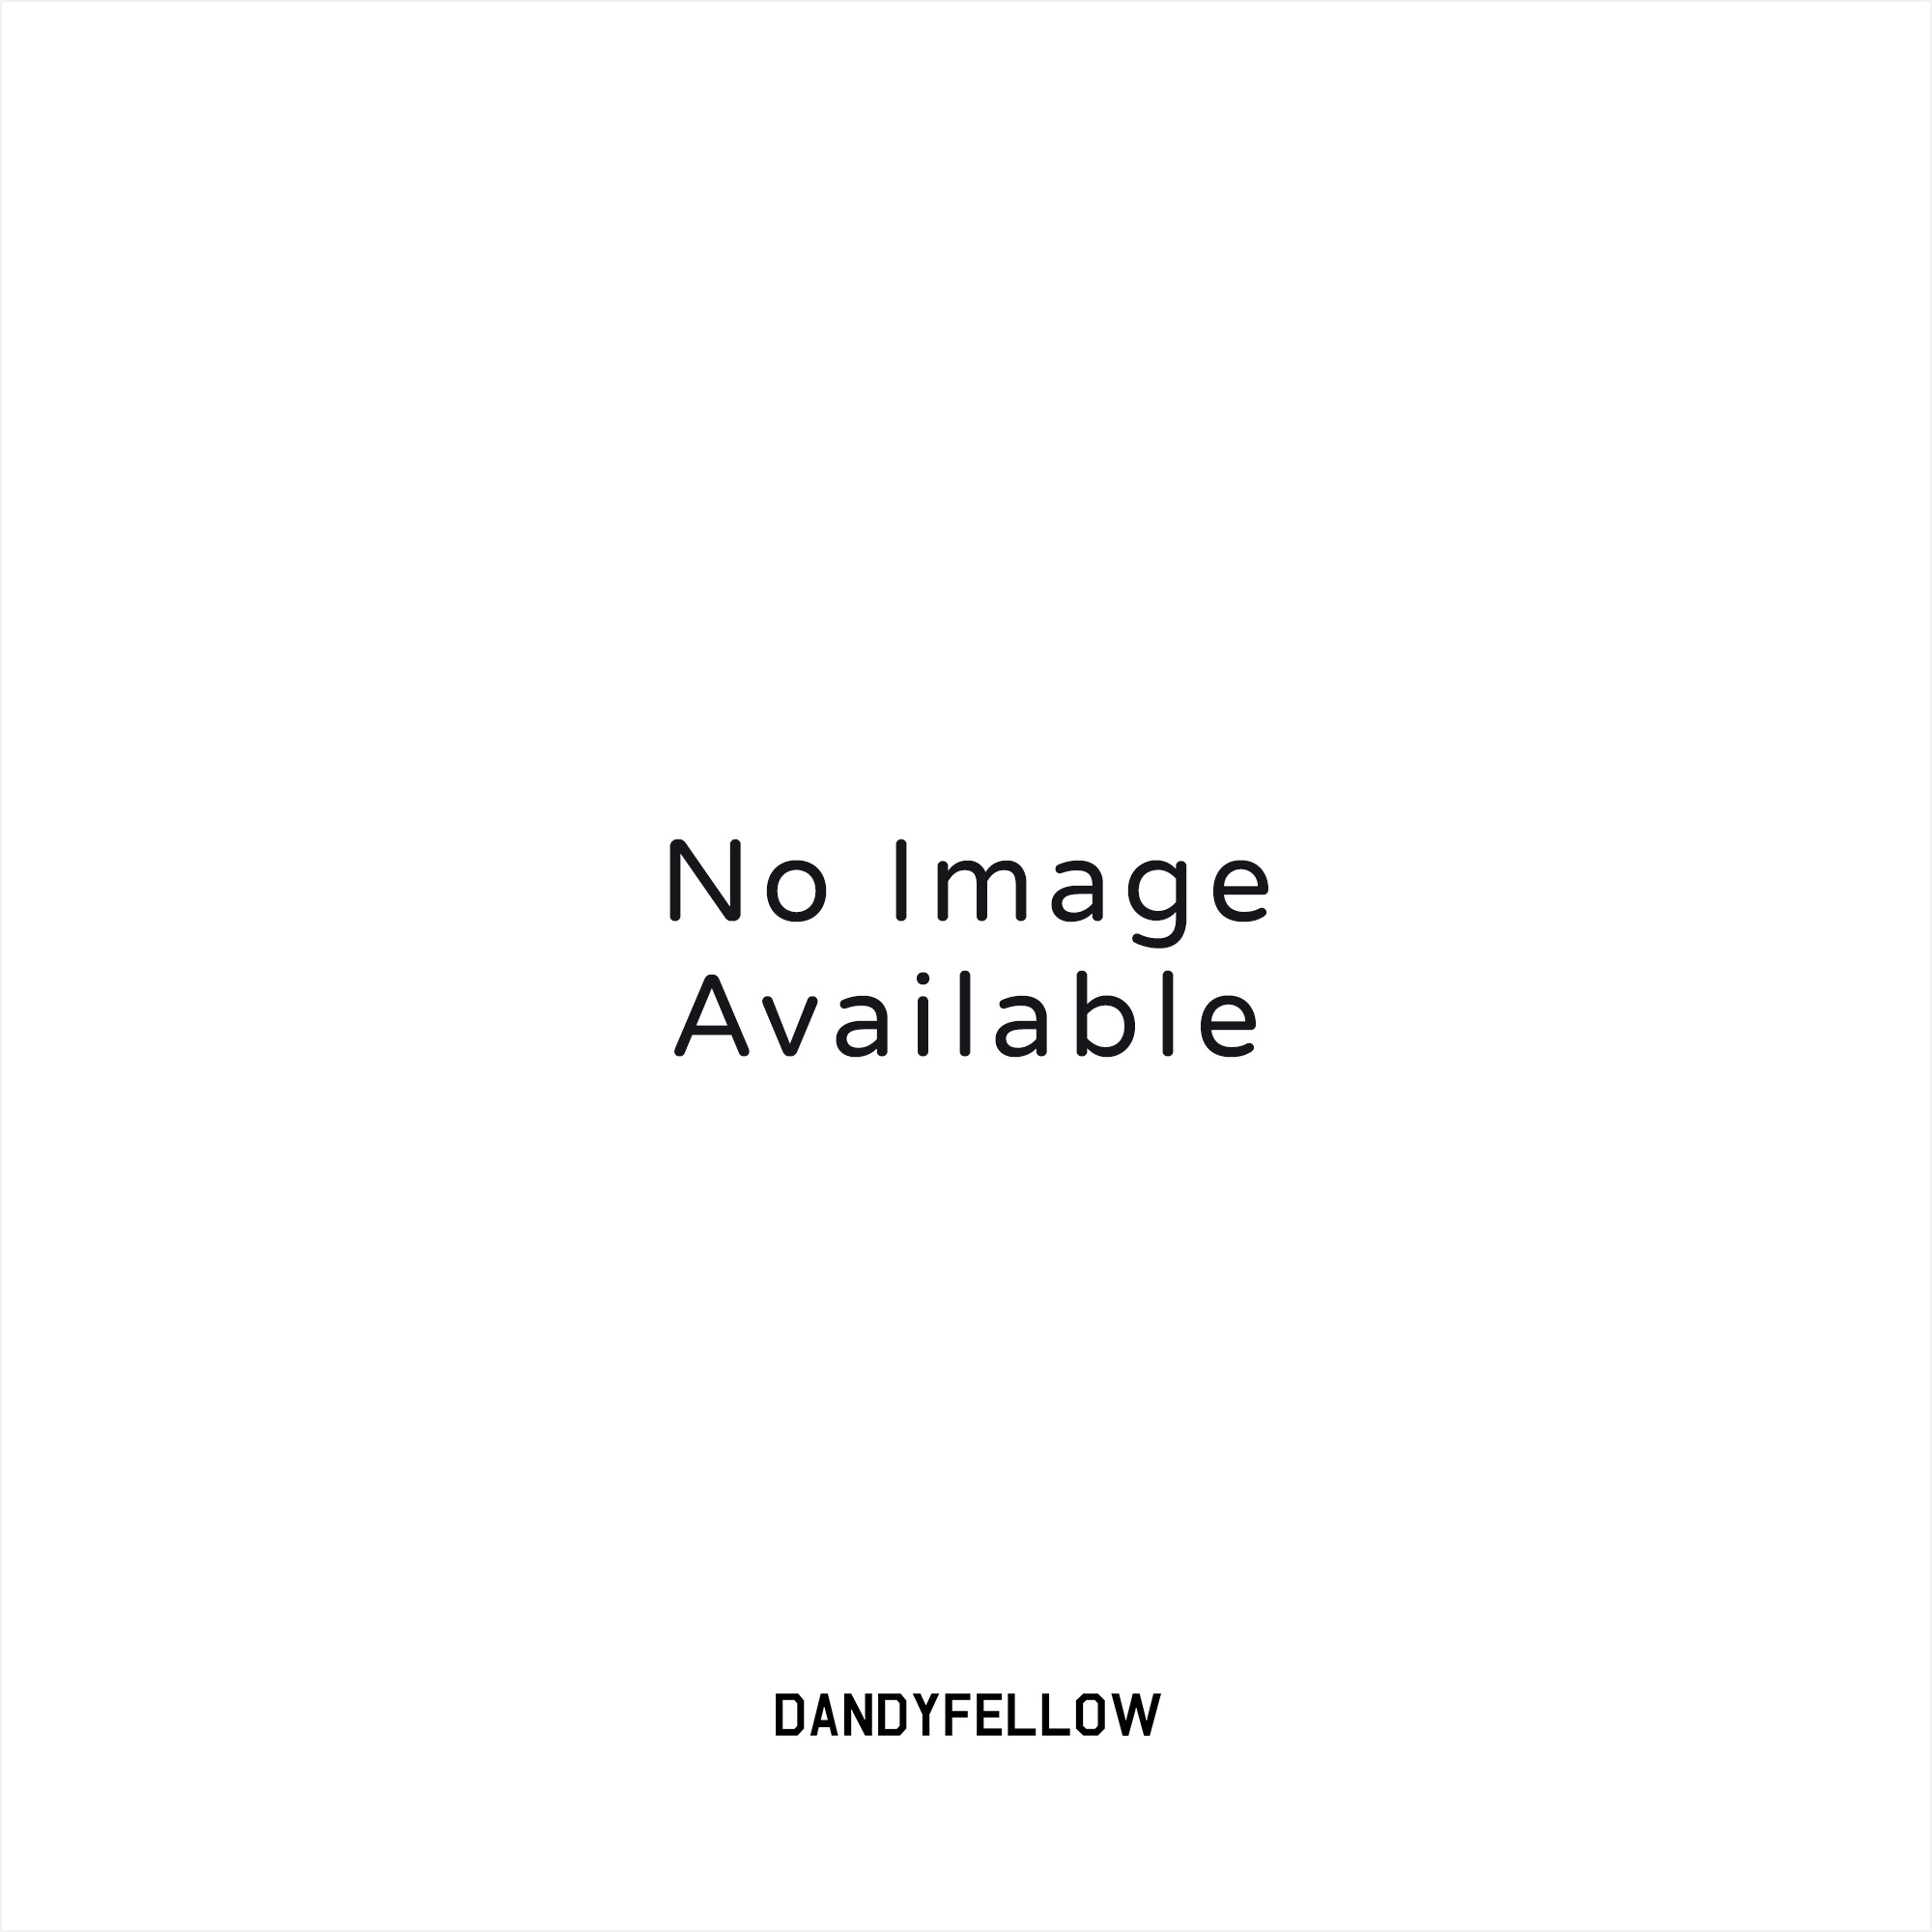 Fred Perry Laurel Wreath Fred Perry Made in England Navy Tennis Bomber Jacket J3174 635